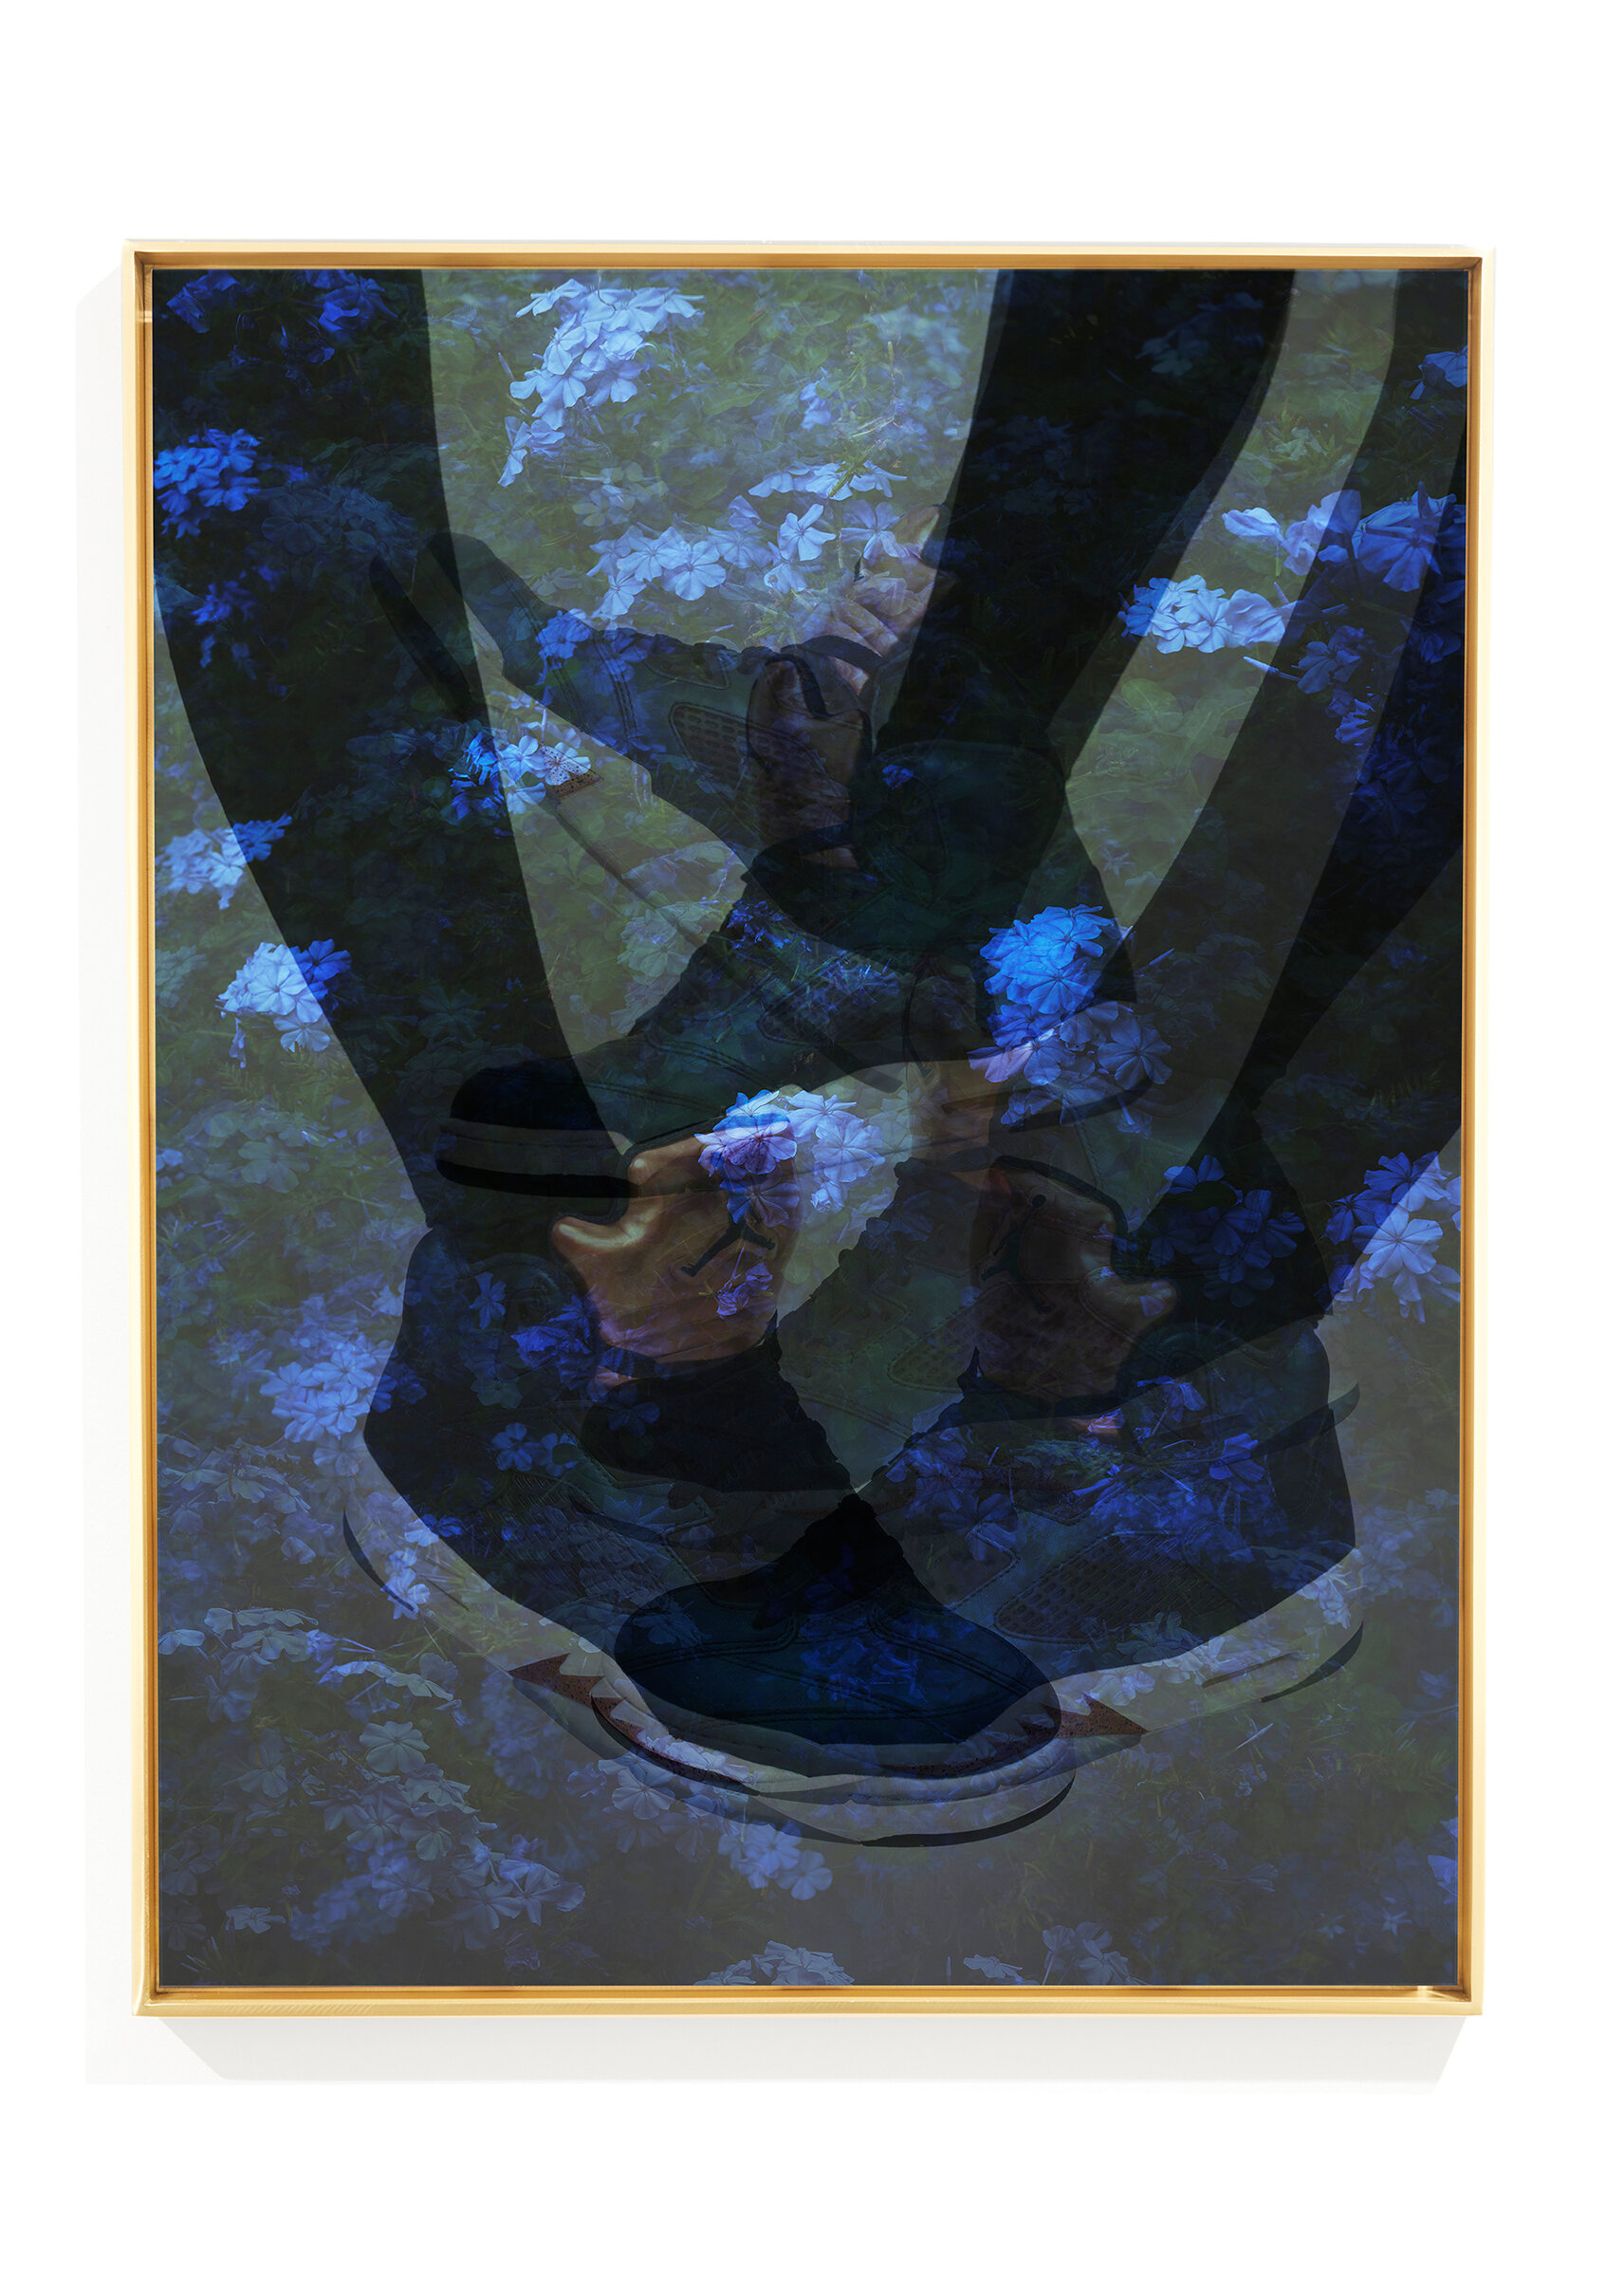 ClampArt_Joseph-Desler-Costa_AirJordanPlumbago2_2017_Dye-Sublimation-on-Aluminum-with-Polished-Brass-Frame_28x21inches-Edition-and-price-TBD.jpg